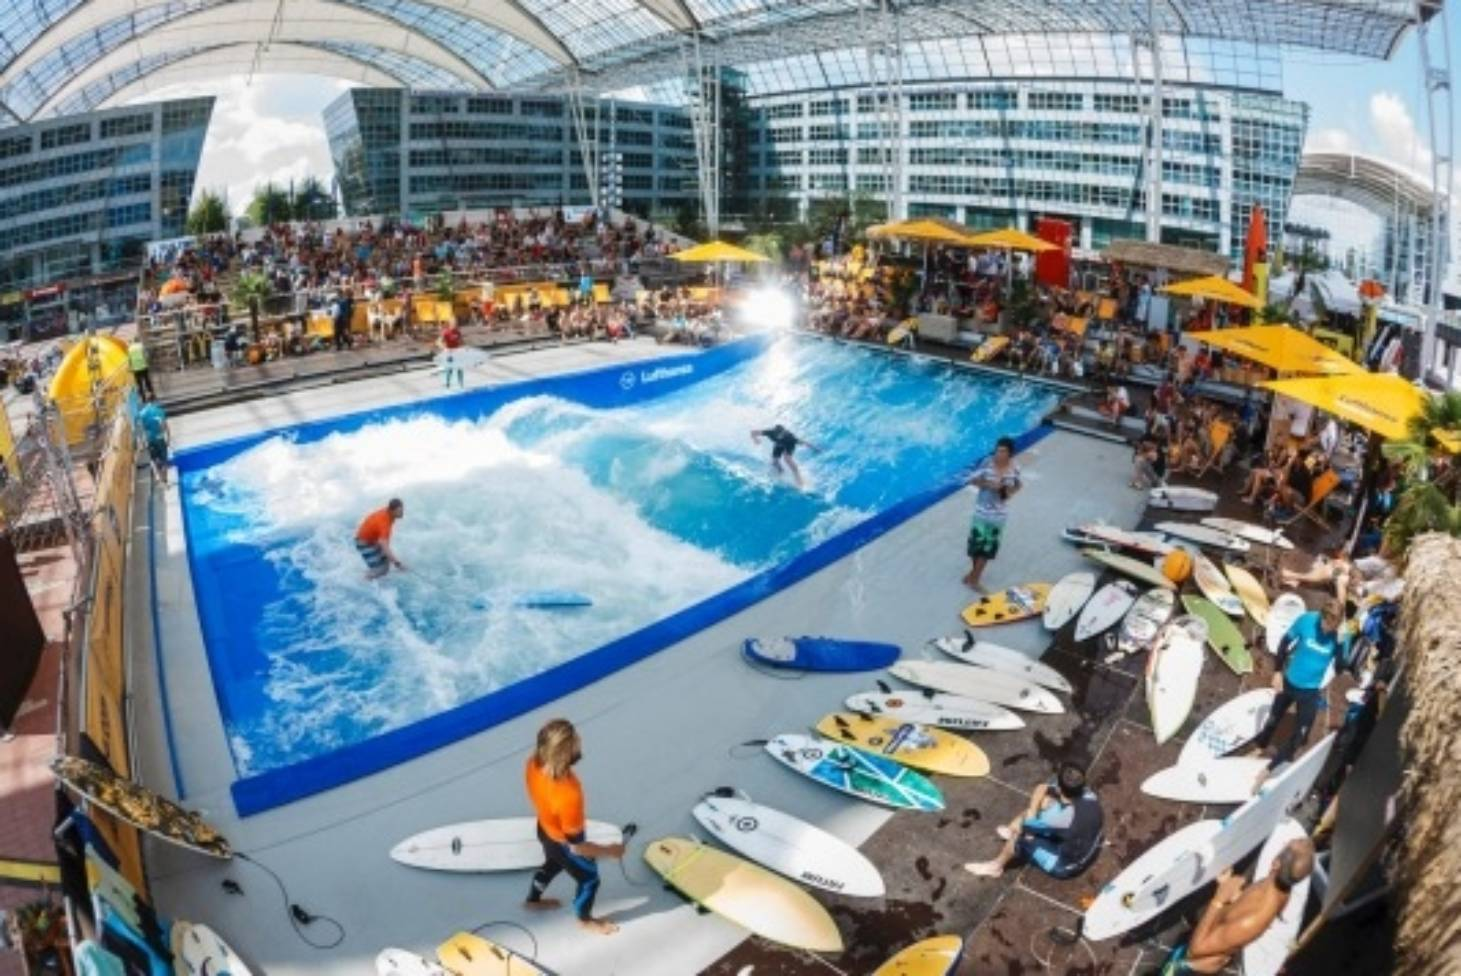 Cash Pool Flughafen München The Greatest European Airport Surf Ice Skate Nap Oh And Fly